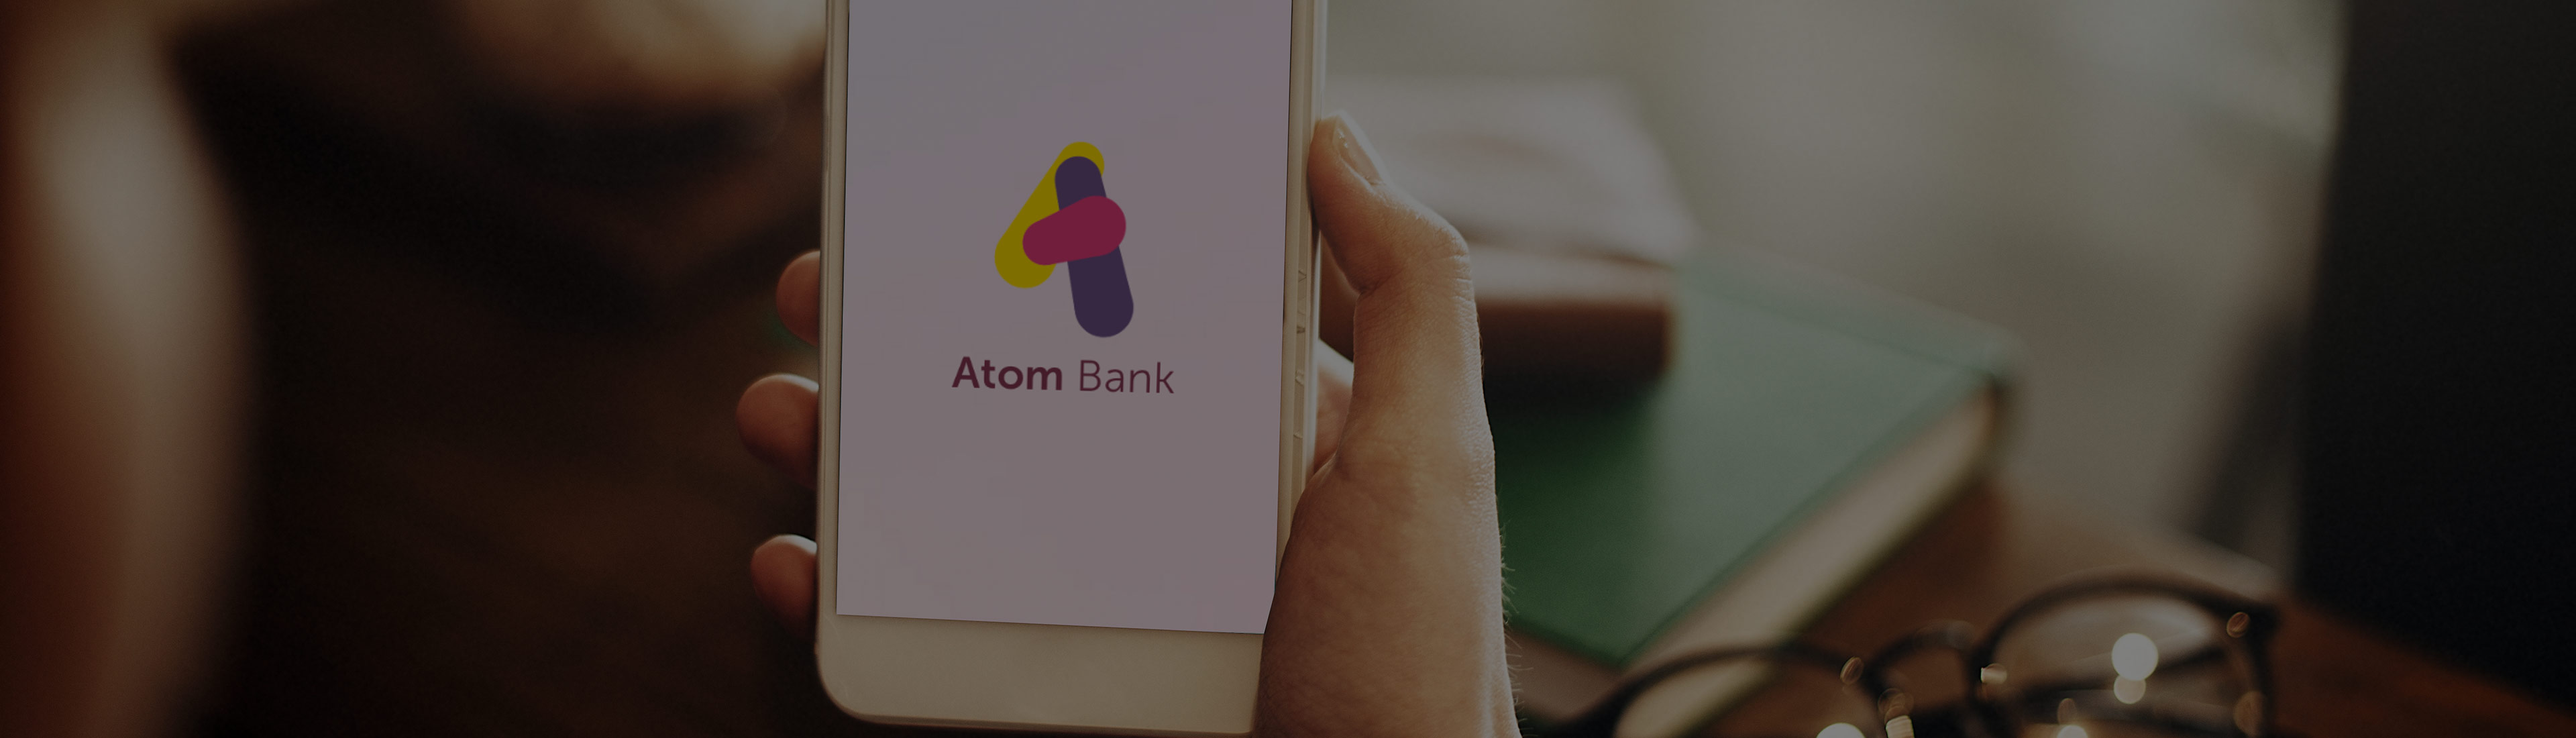 Atom Bank iPhone